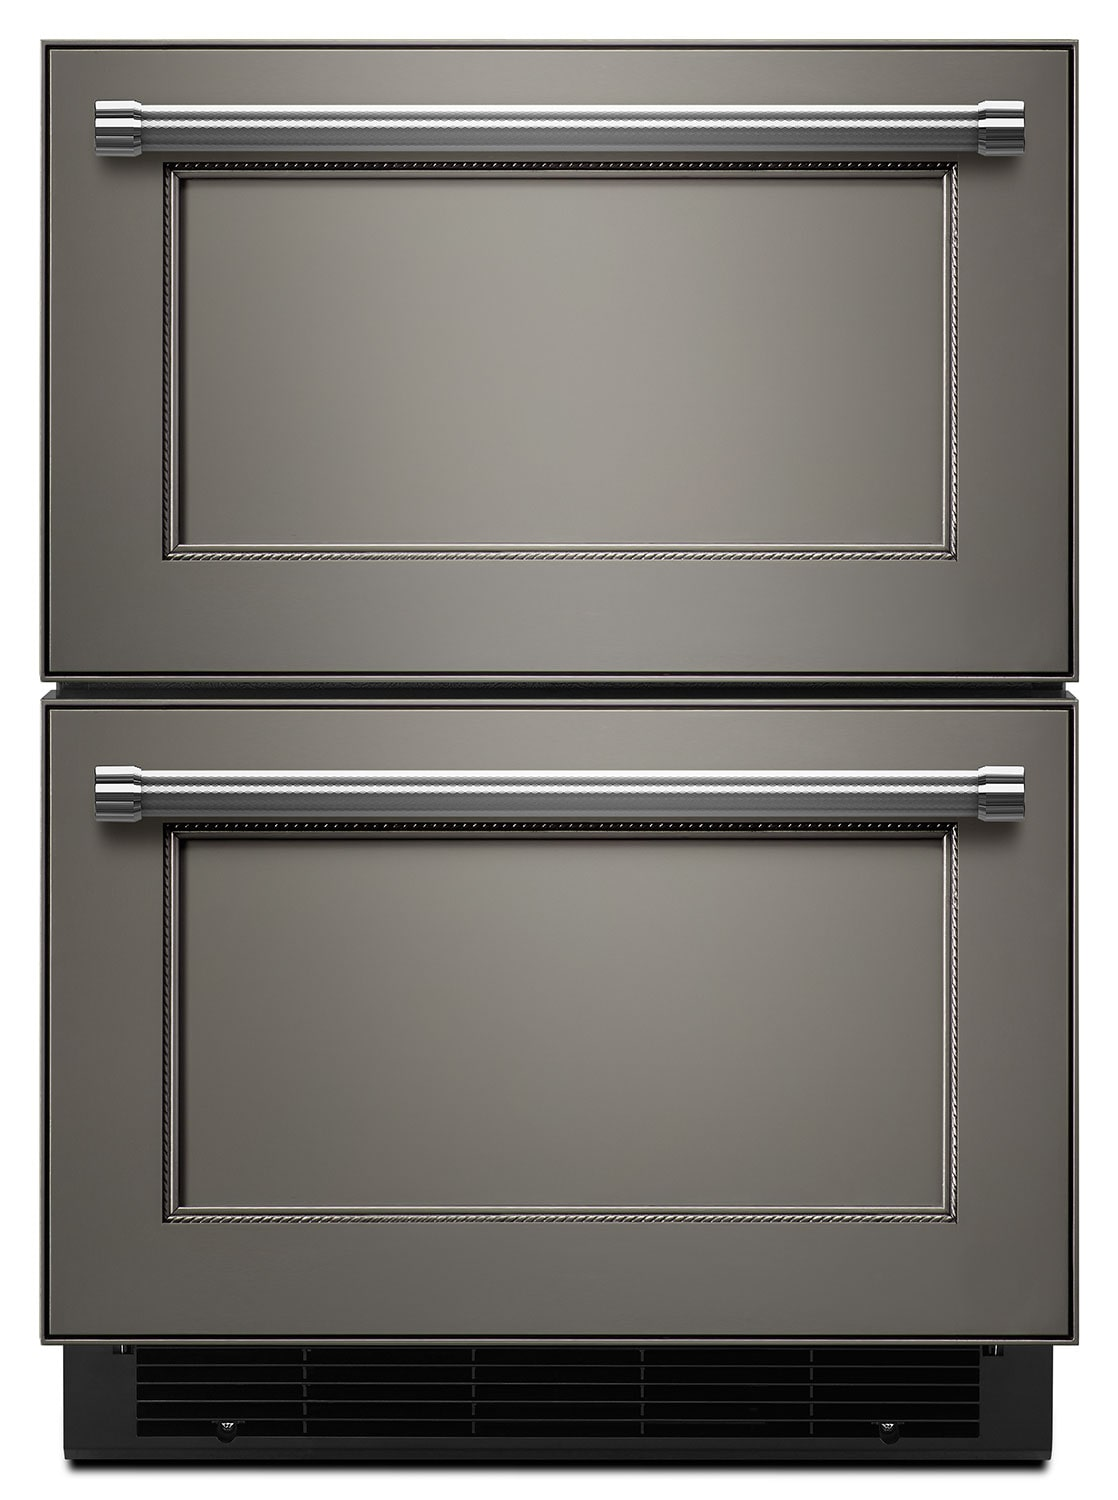 Refrigerators and Freezers - KitchenAid 4.7 Cu. Ft. Refrigerator and Freezer Drawer – Panel Ready KUDF204EPA